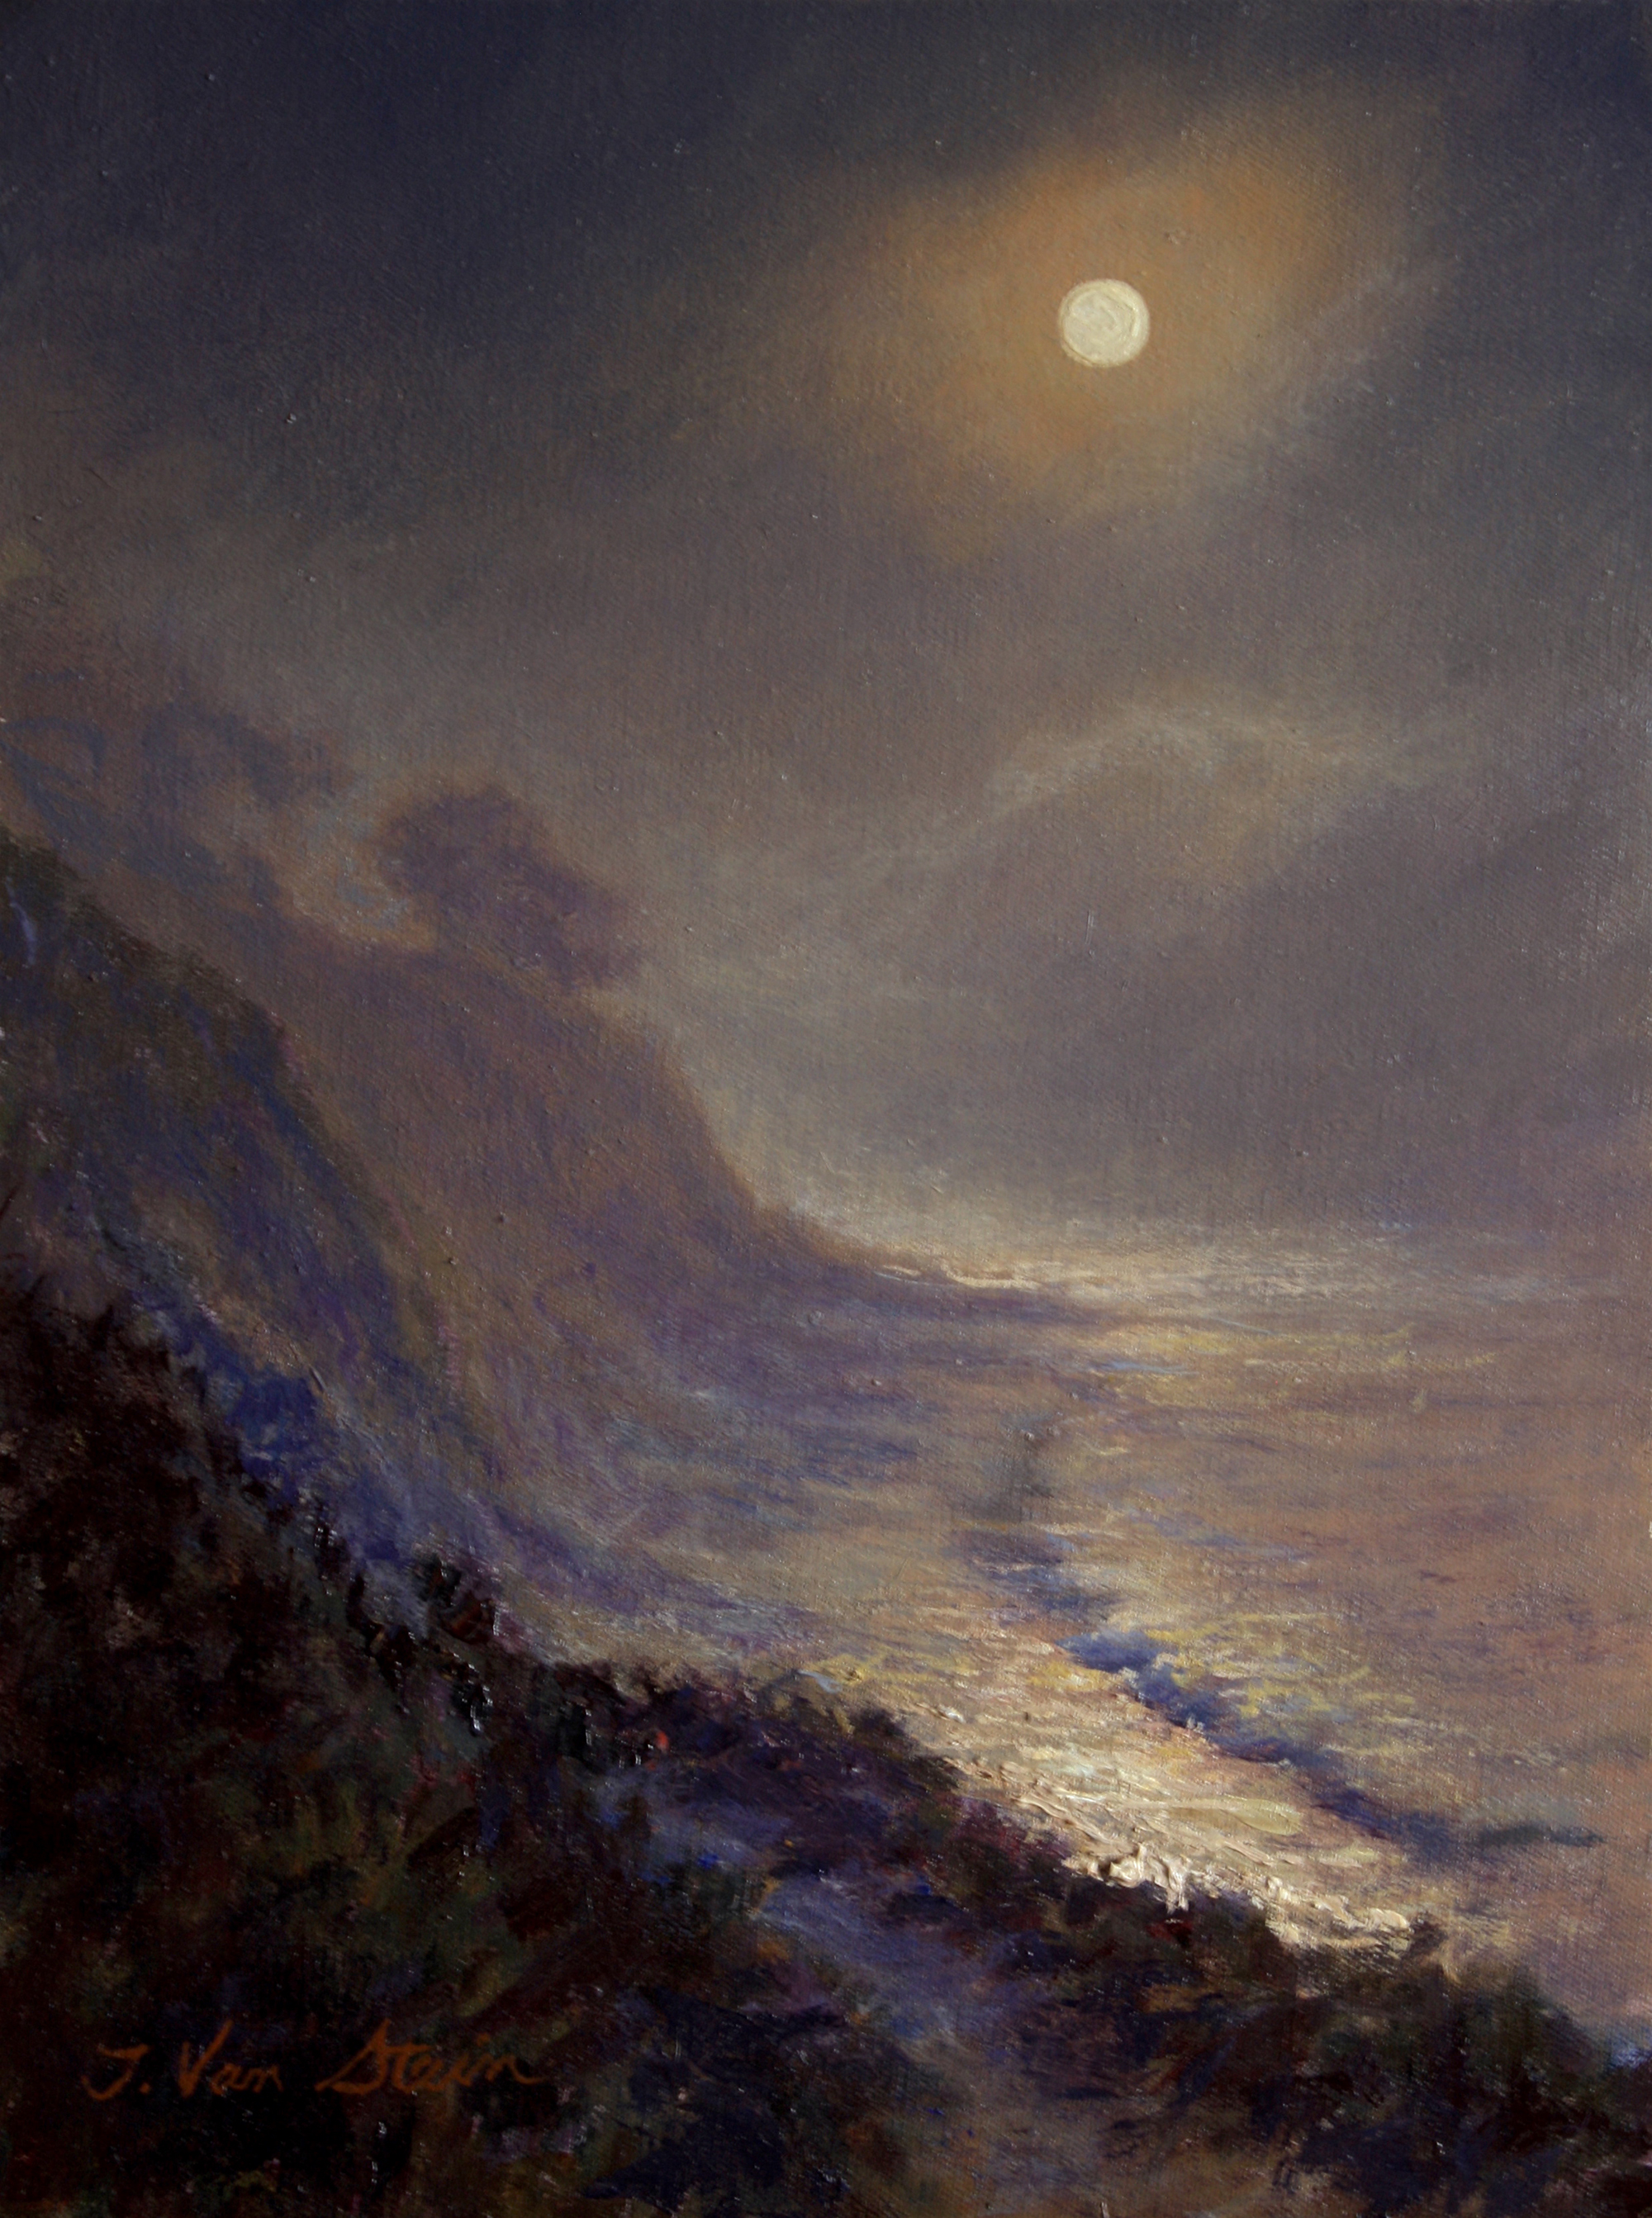 Moon through the Fog, from Fili's Point,  16x12,  oil on canvas, 2019